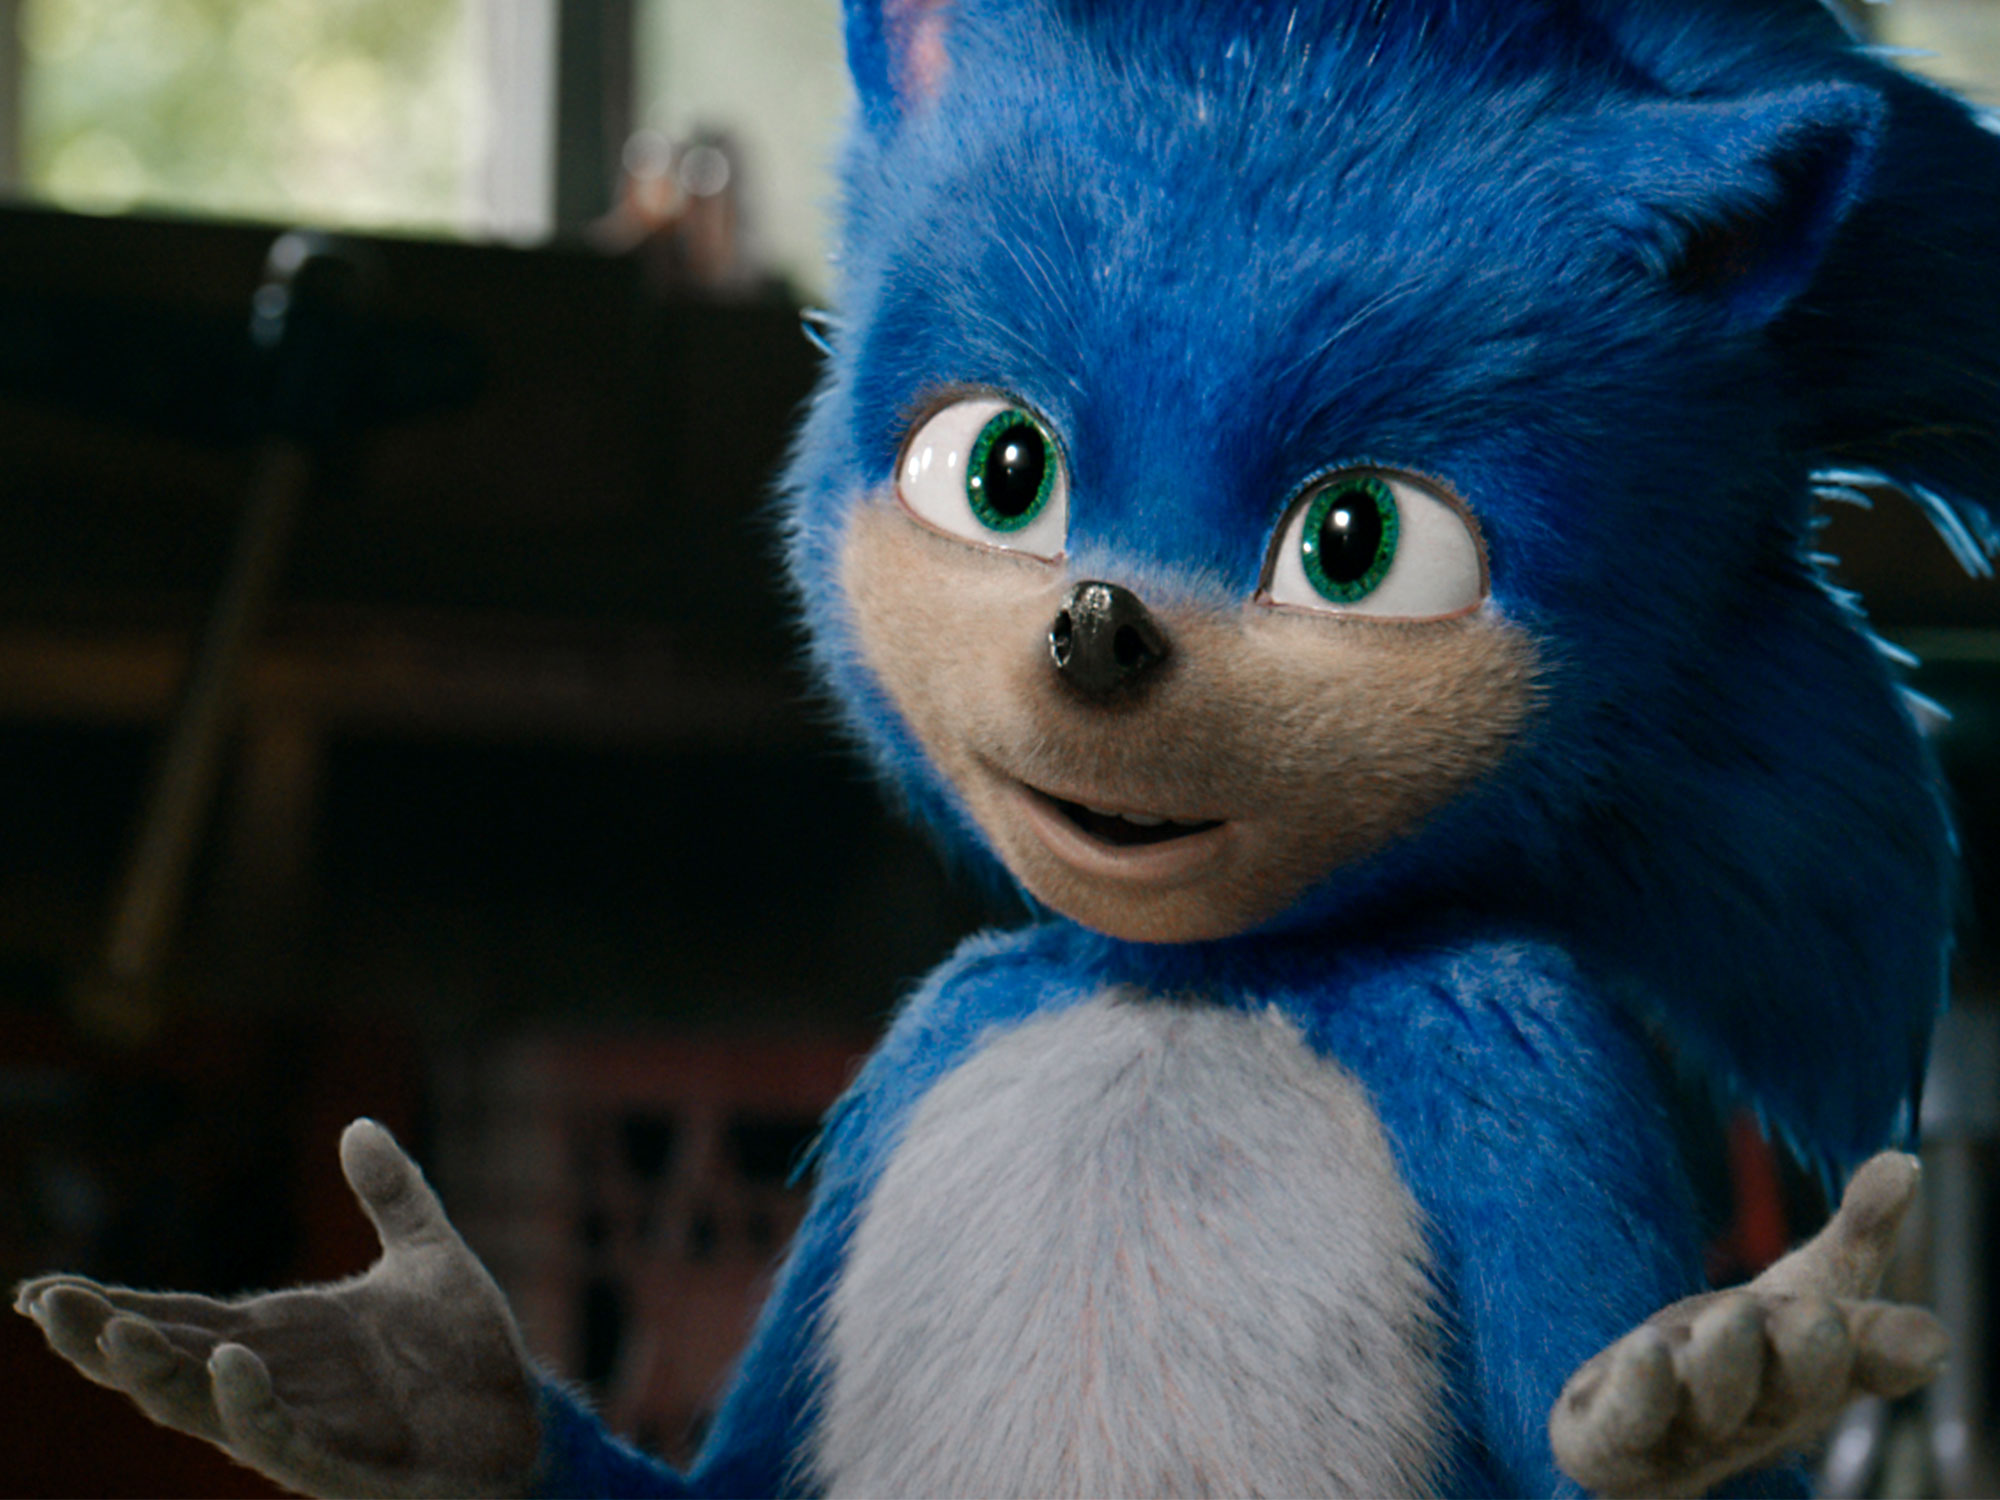 Gotta go fast to watch the new Sonic The Hedgehog trailer